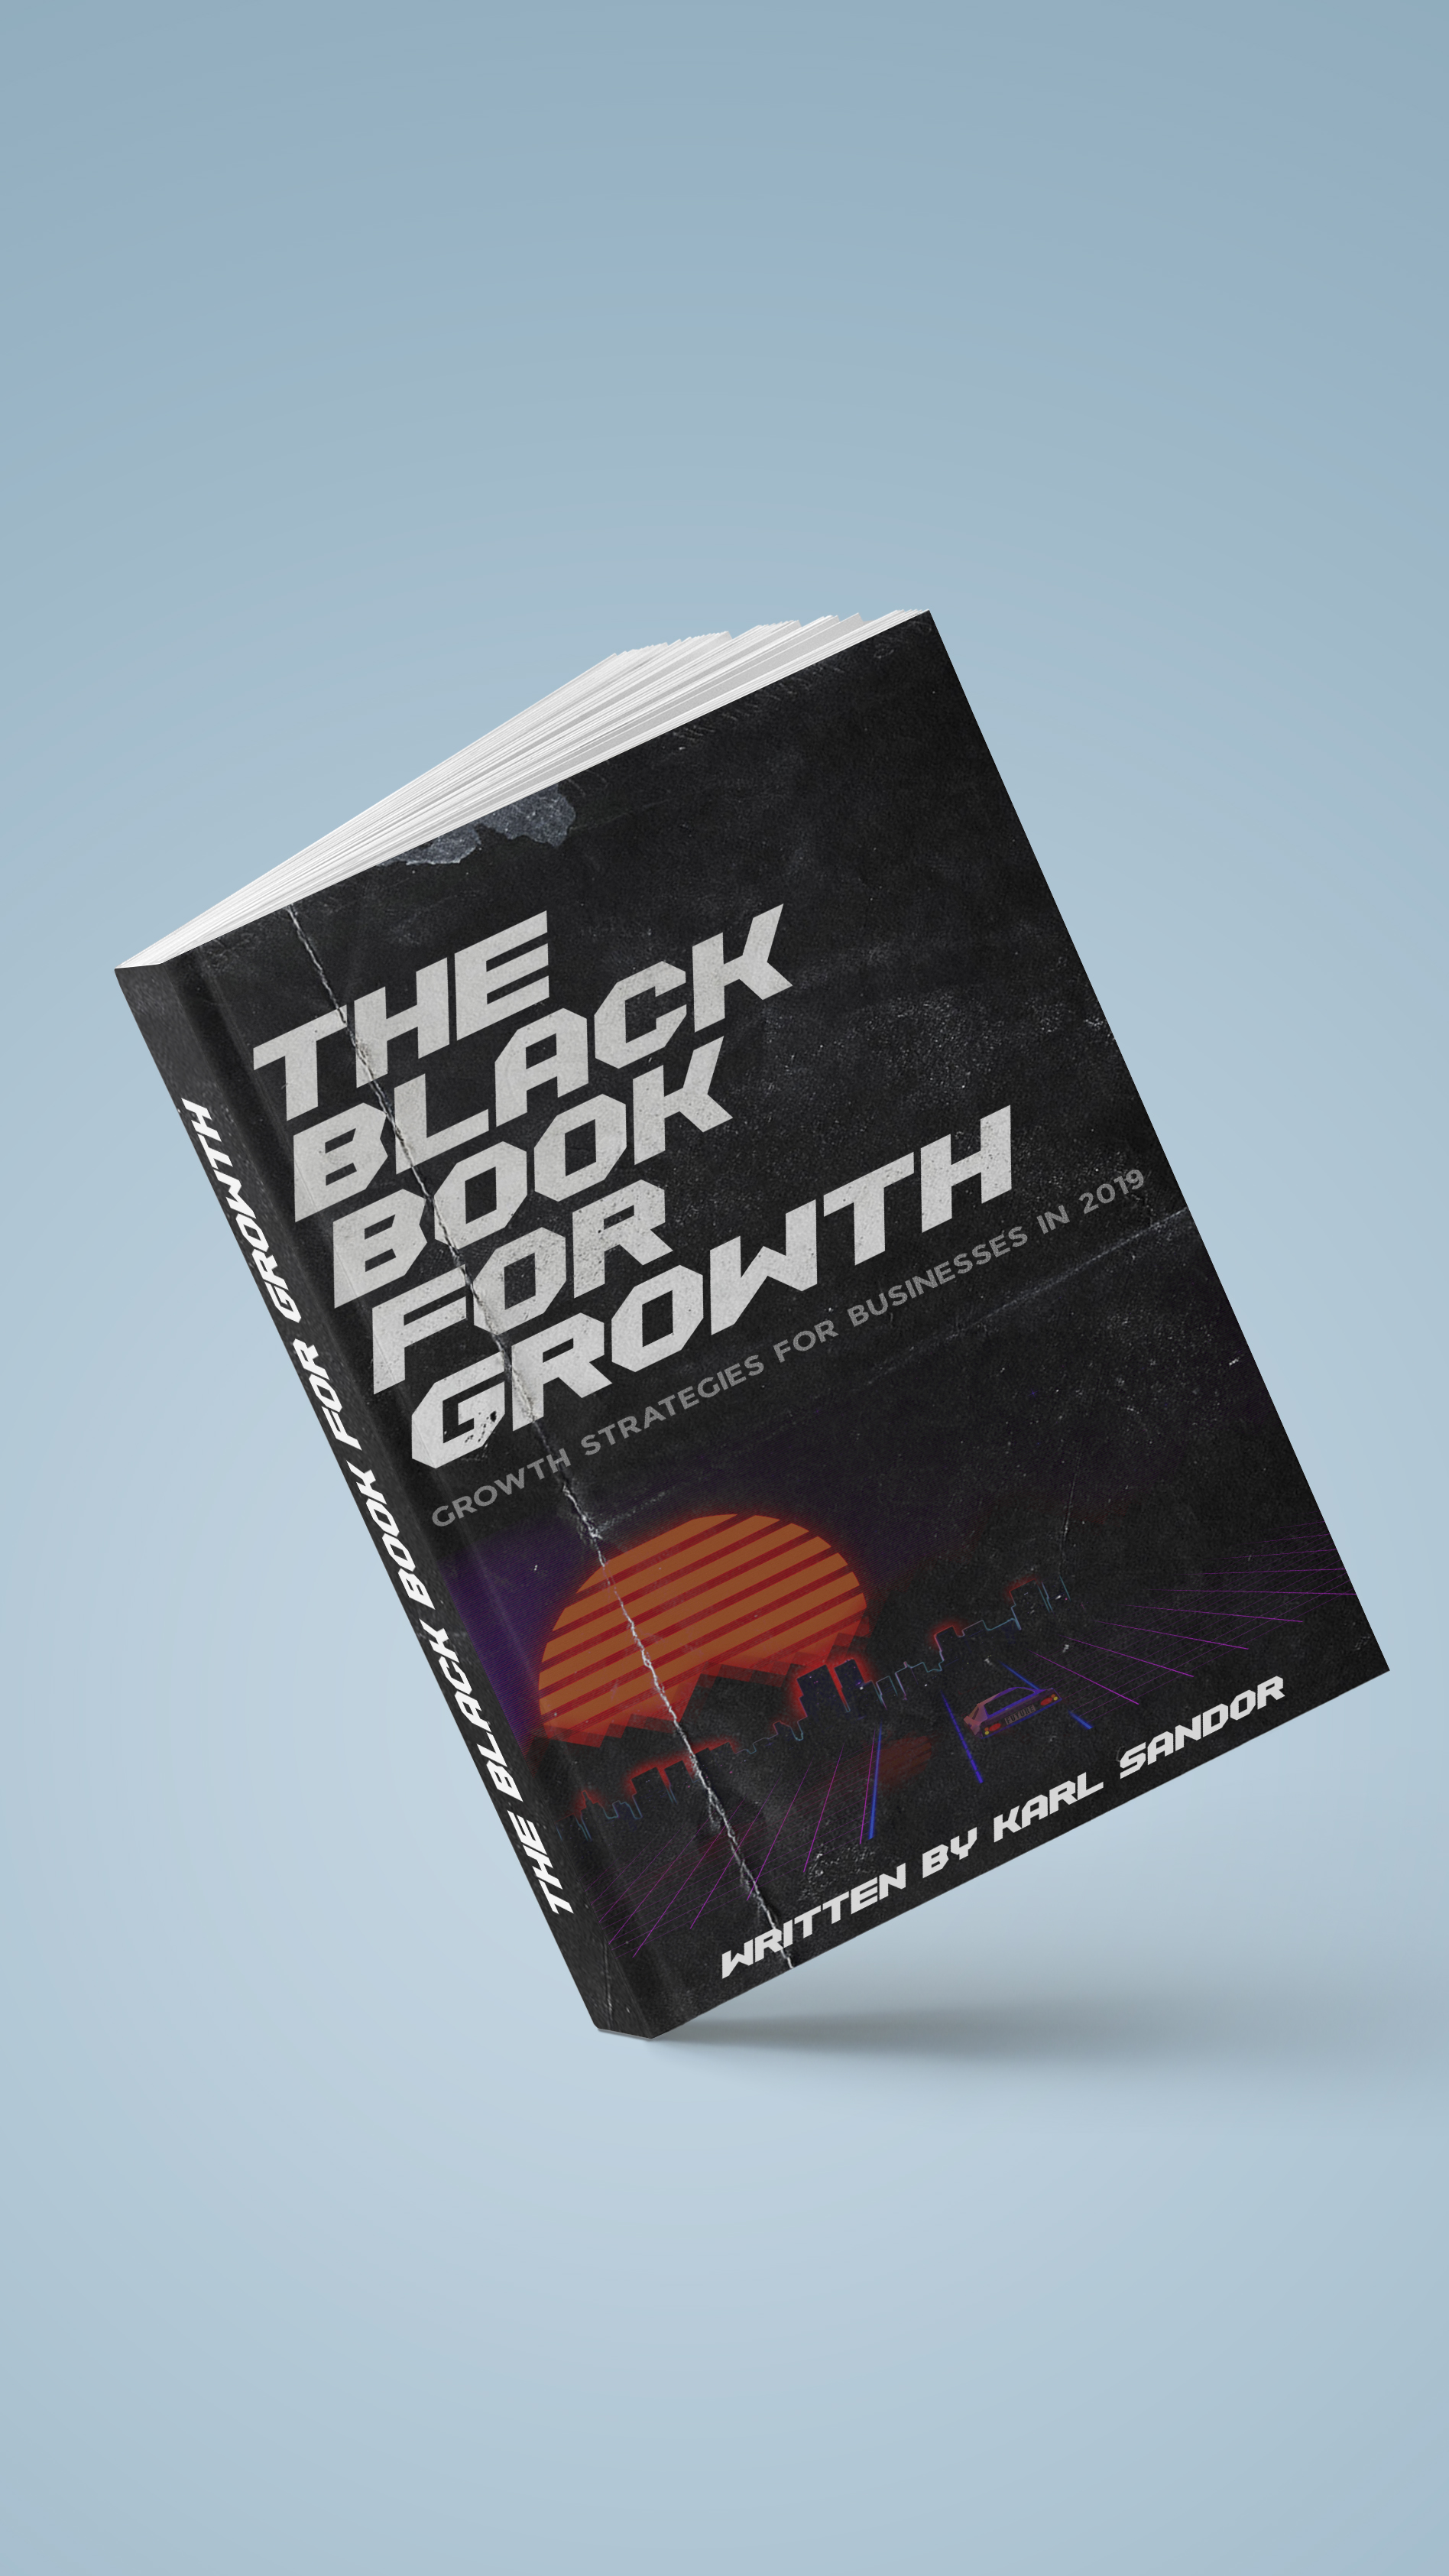 Author, Karl Sandor Launches New Book \'The Black Book for Growth\' With Secrets of Growth Hacking